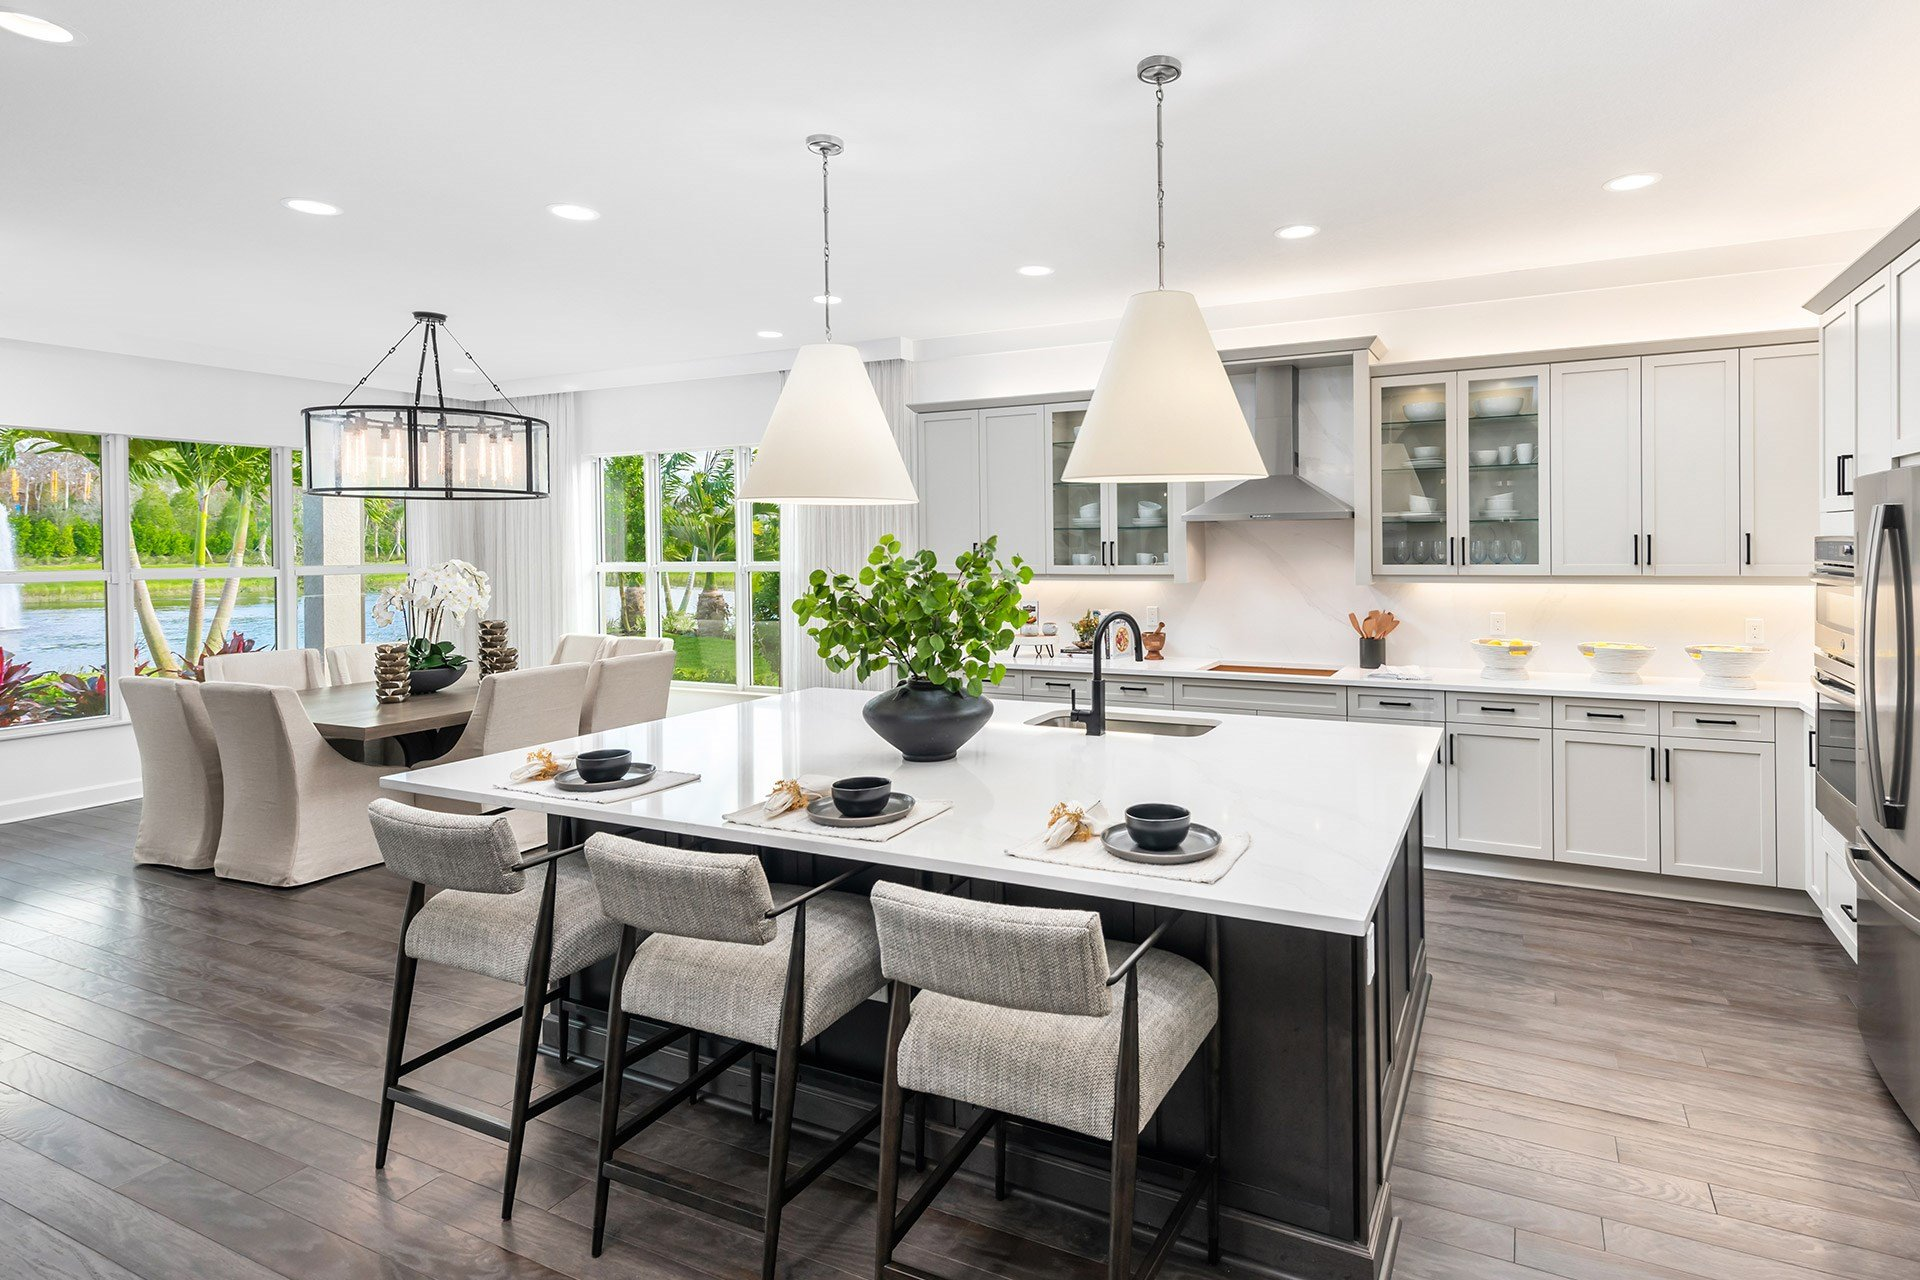 Sanibel Kitchen & Dining Room